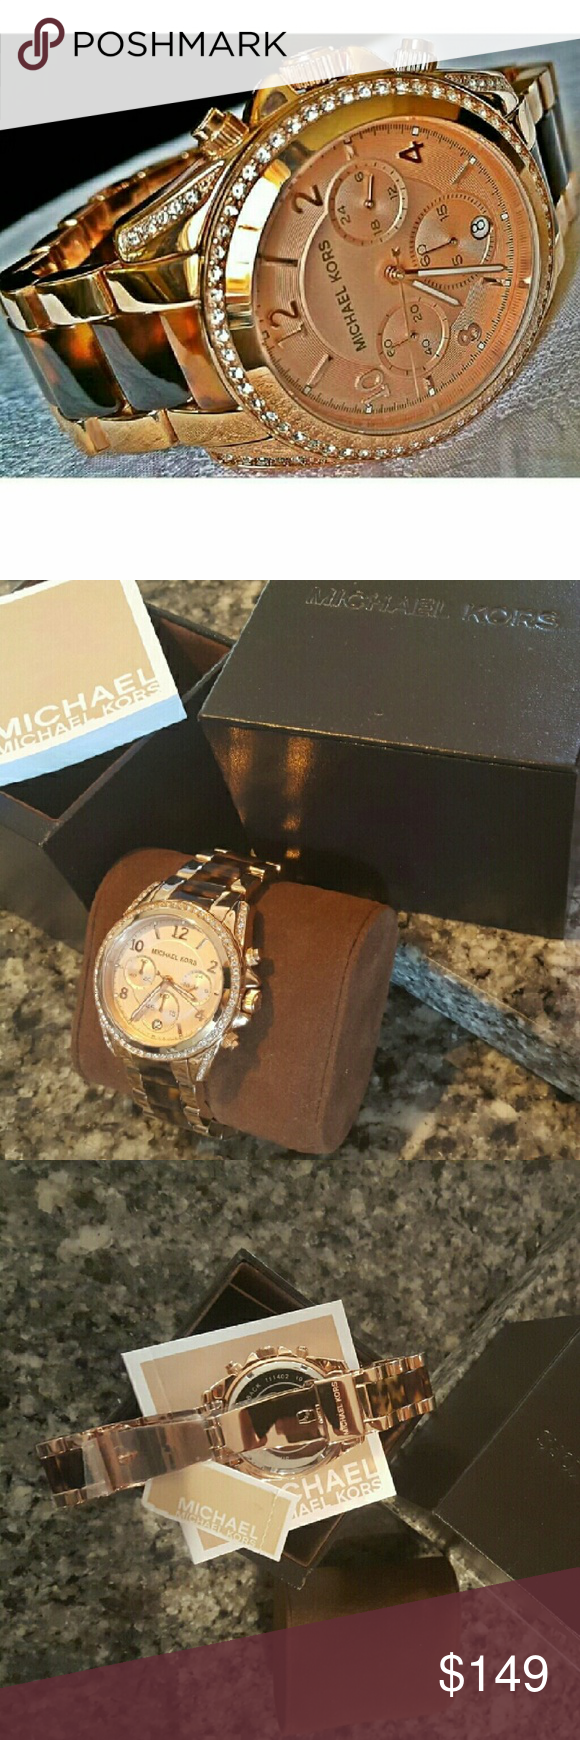 Stunning Michael Kors Blair MK Glitz watch MK5859 Guaranteed Authentic MK5859 / Model: Blair / Retail: $275 / Destination Glam rose gold stainless steel and tortoise acetate / New with Michael Kors watch box and owners booklet included / Chronograph / 39mm case / 10 ATM / UPC: 796483039544 / No trades, buy now or offer only. Shipped same business day in most cases Michael Kors Accessories Watches